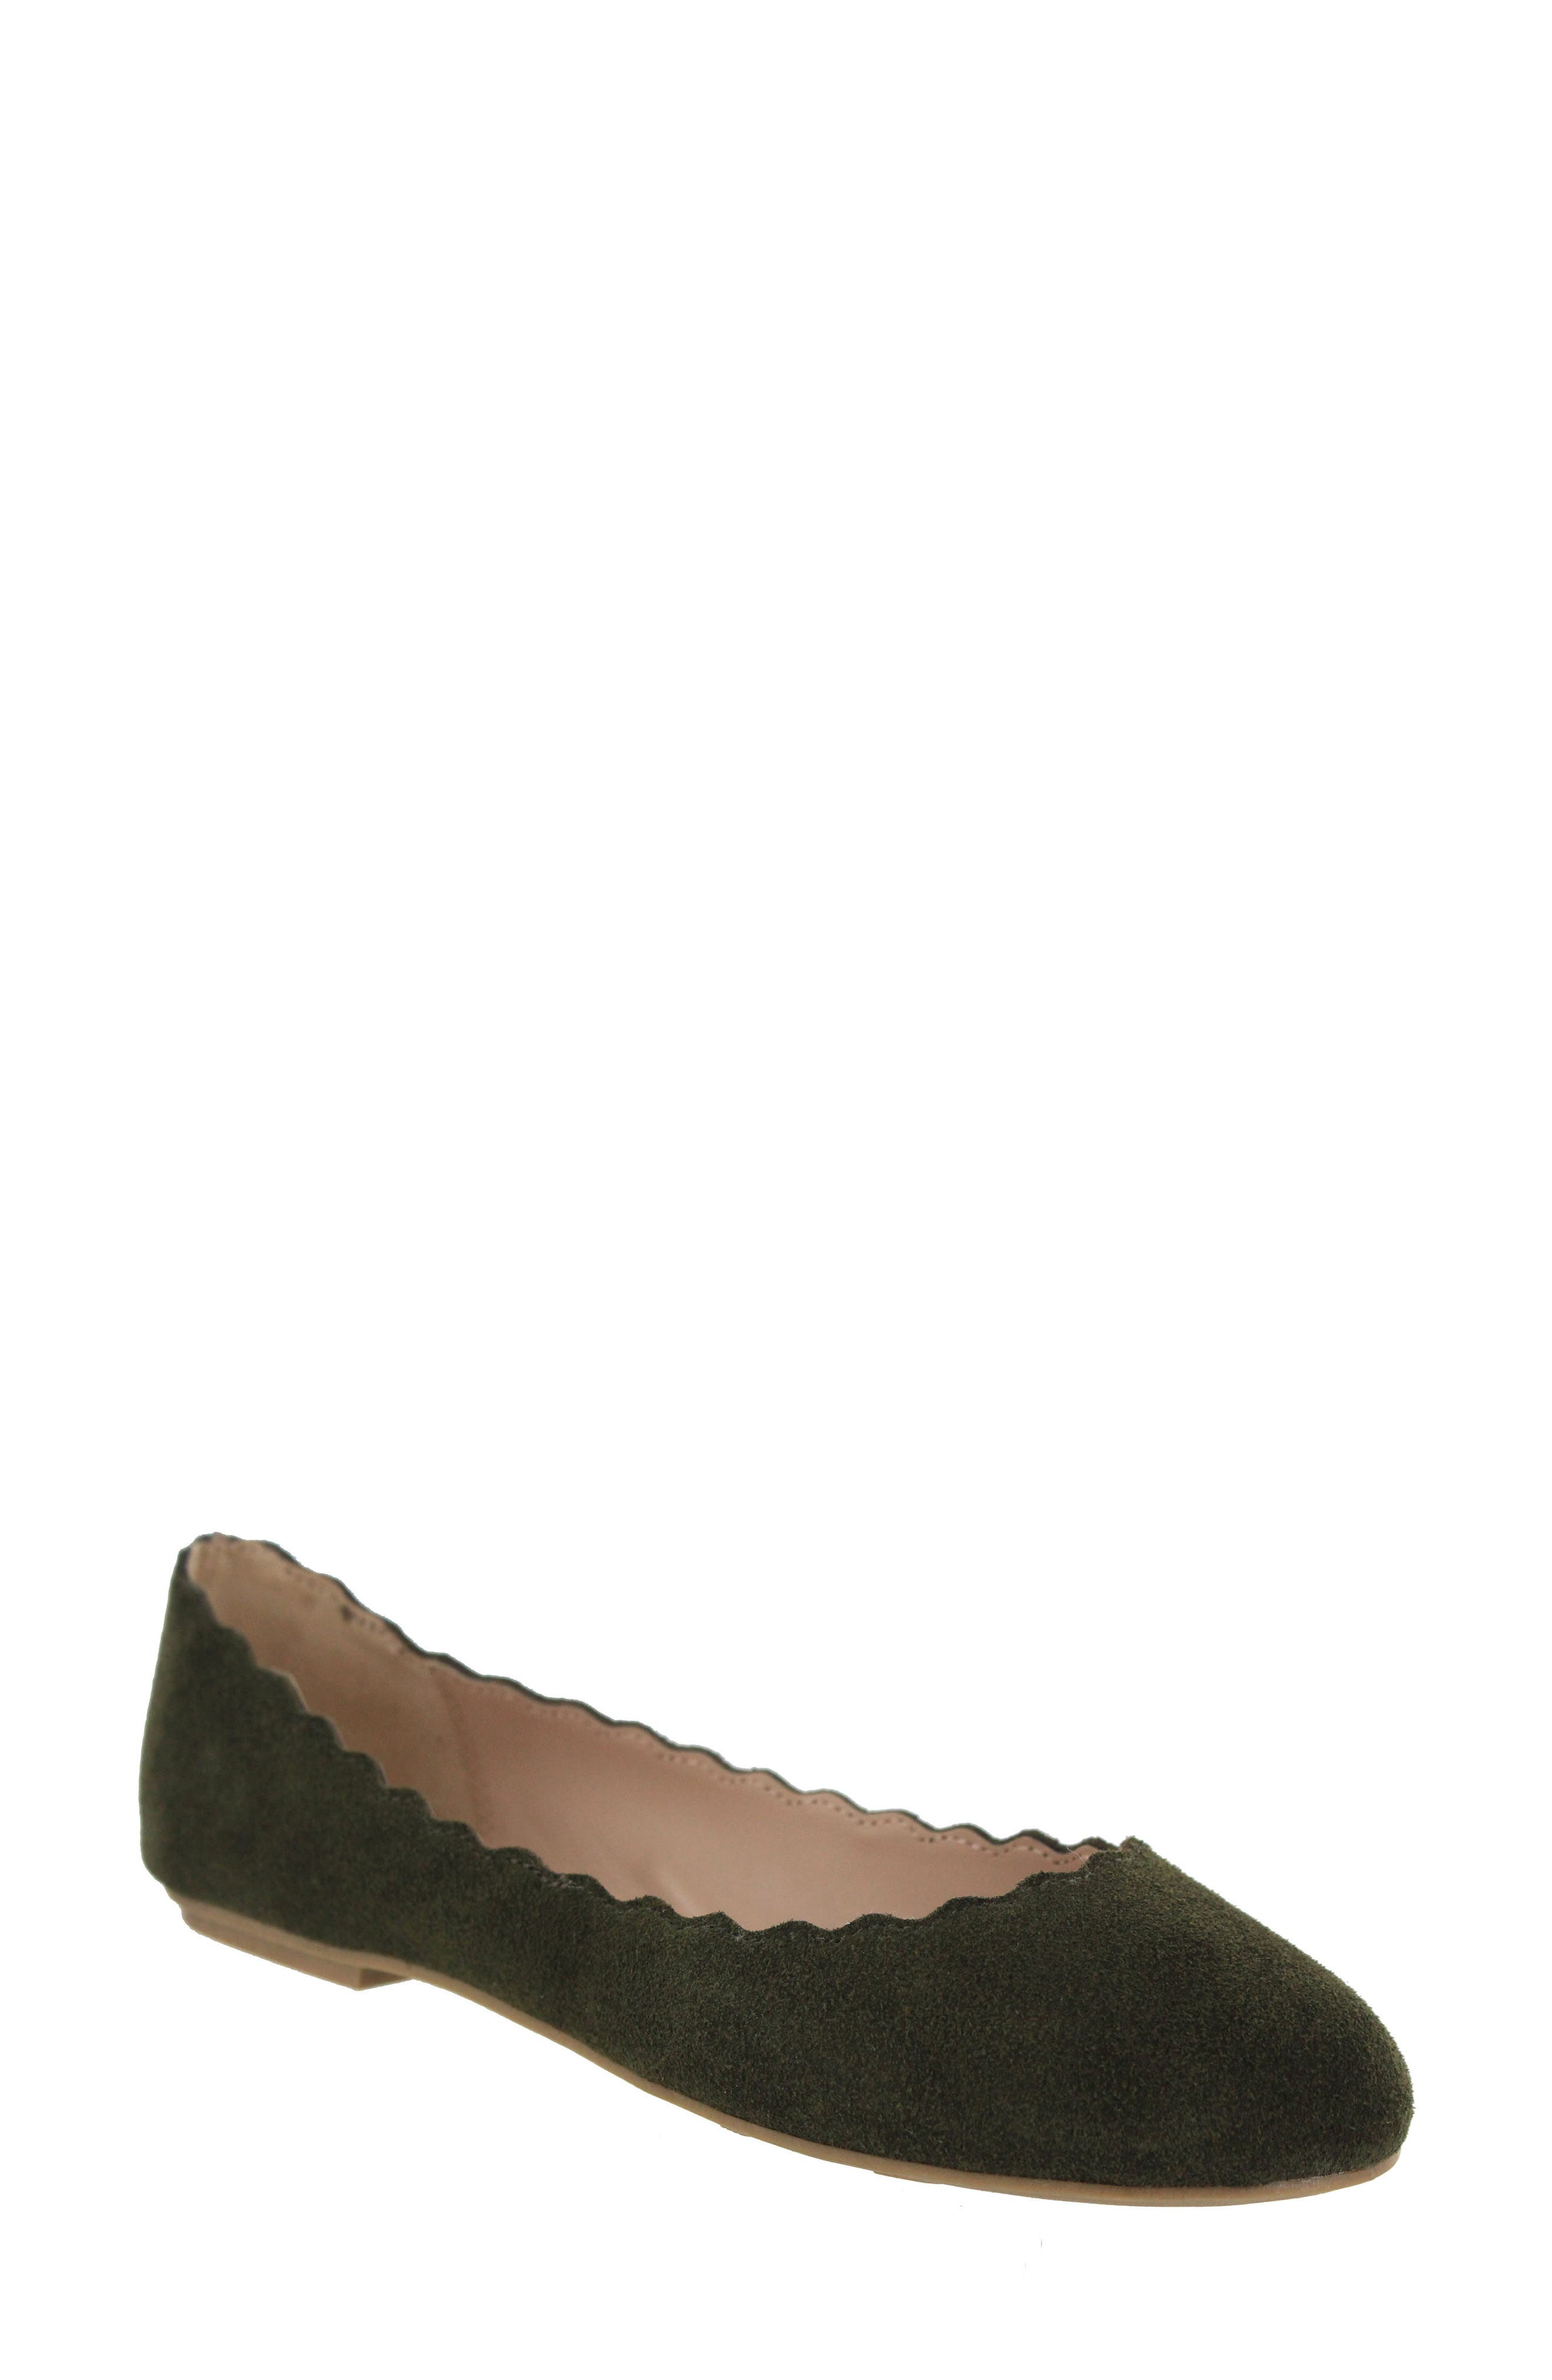 Gianna Scalloped Flat,                             Main thumbnail 1, color,                             Olive